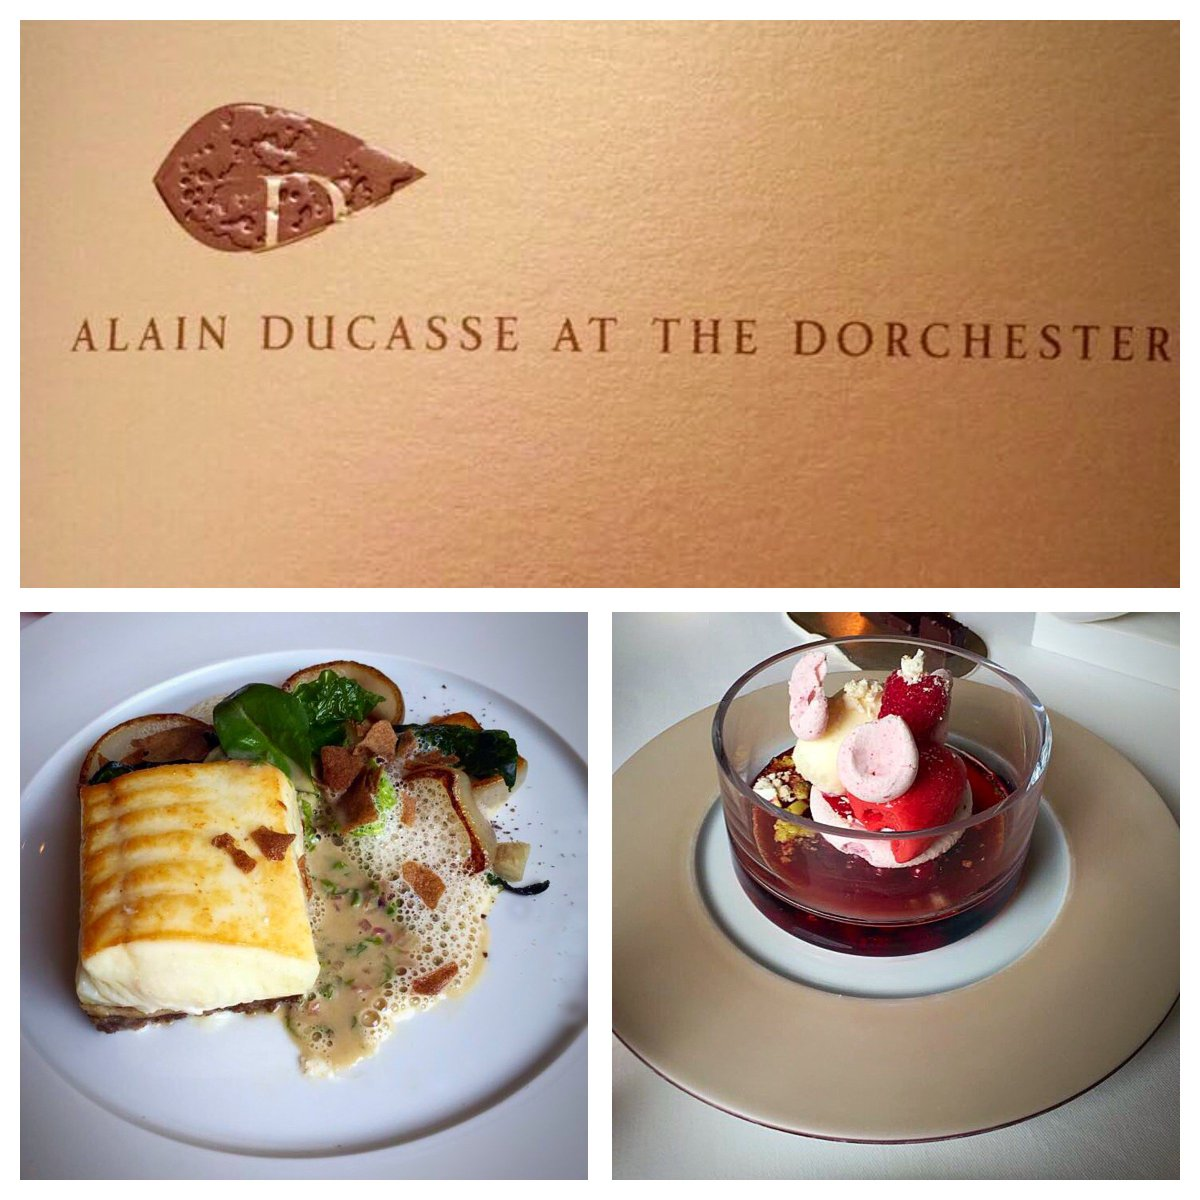 A superb meal at Alain Ducasse @TheDorchester Incredible food and impeccable service!  #alainducasse #london #thedorchester #luckypeople <br>http://pic.twitter.com/sYaN9NHOQi